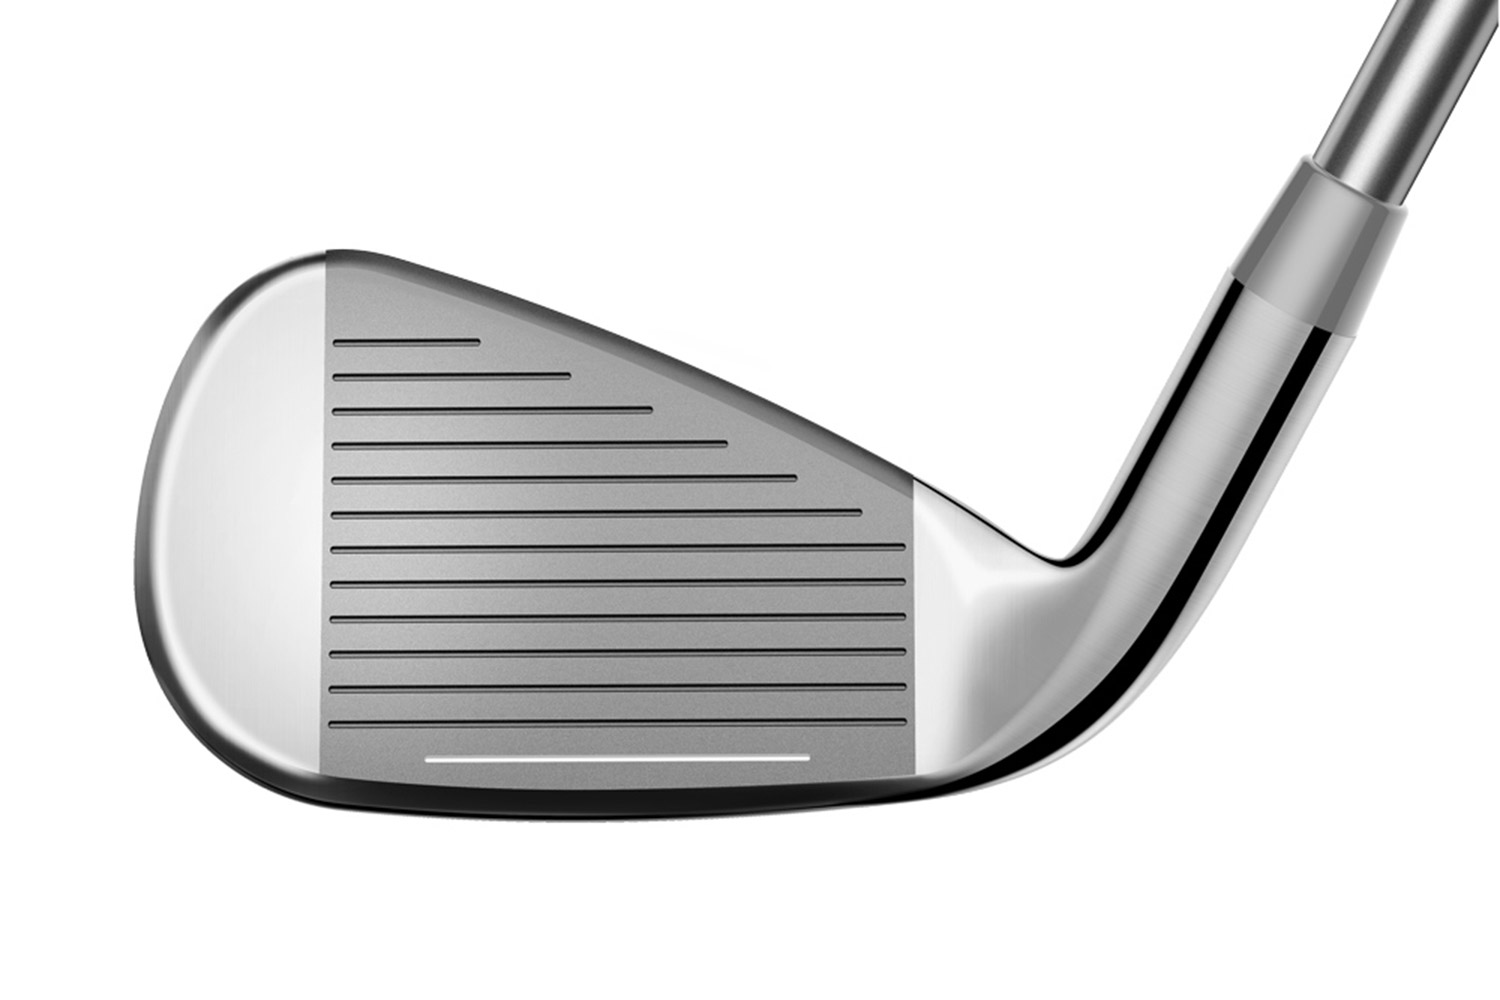 cobra golf max 4 5 hybrid irons ladies graphite 6 sw from american golf. Black Bedroom Furniture Sets. Home Design Ideas